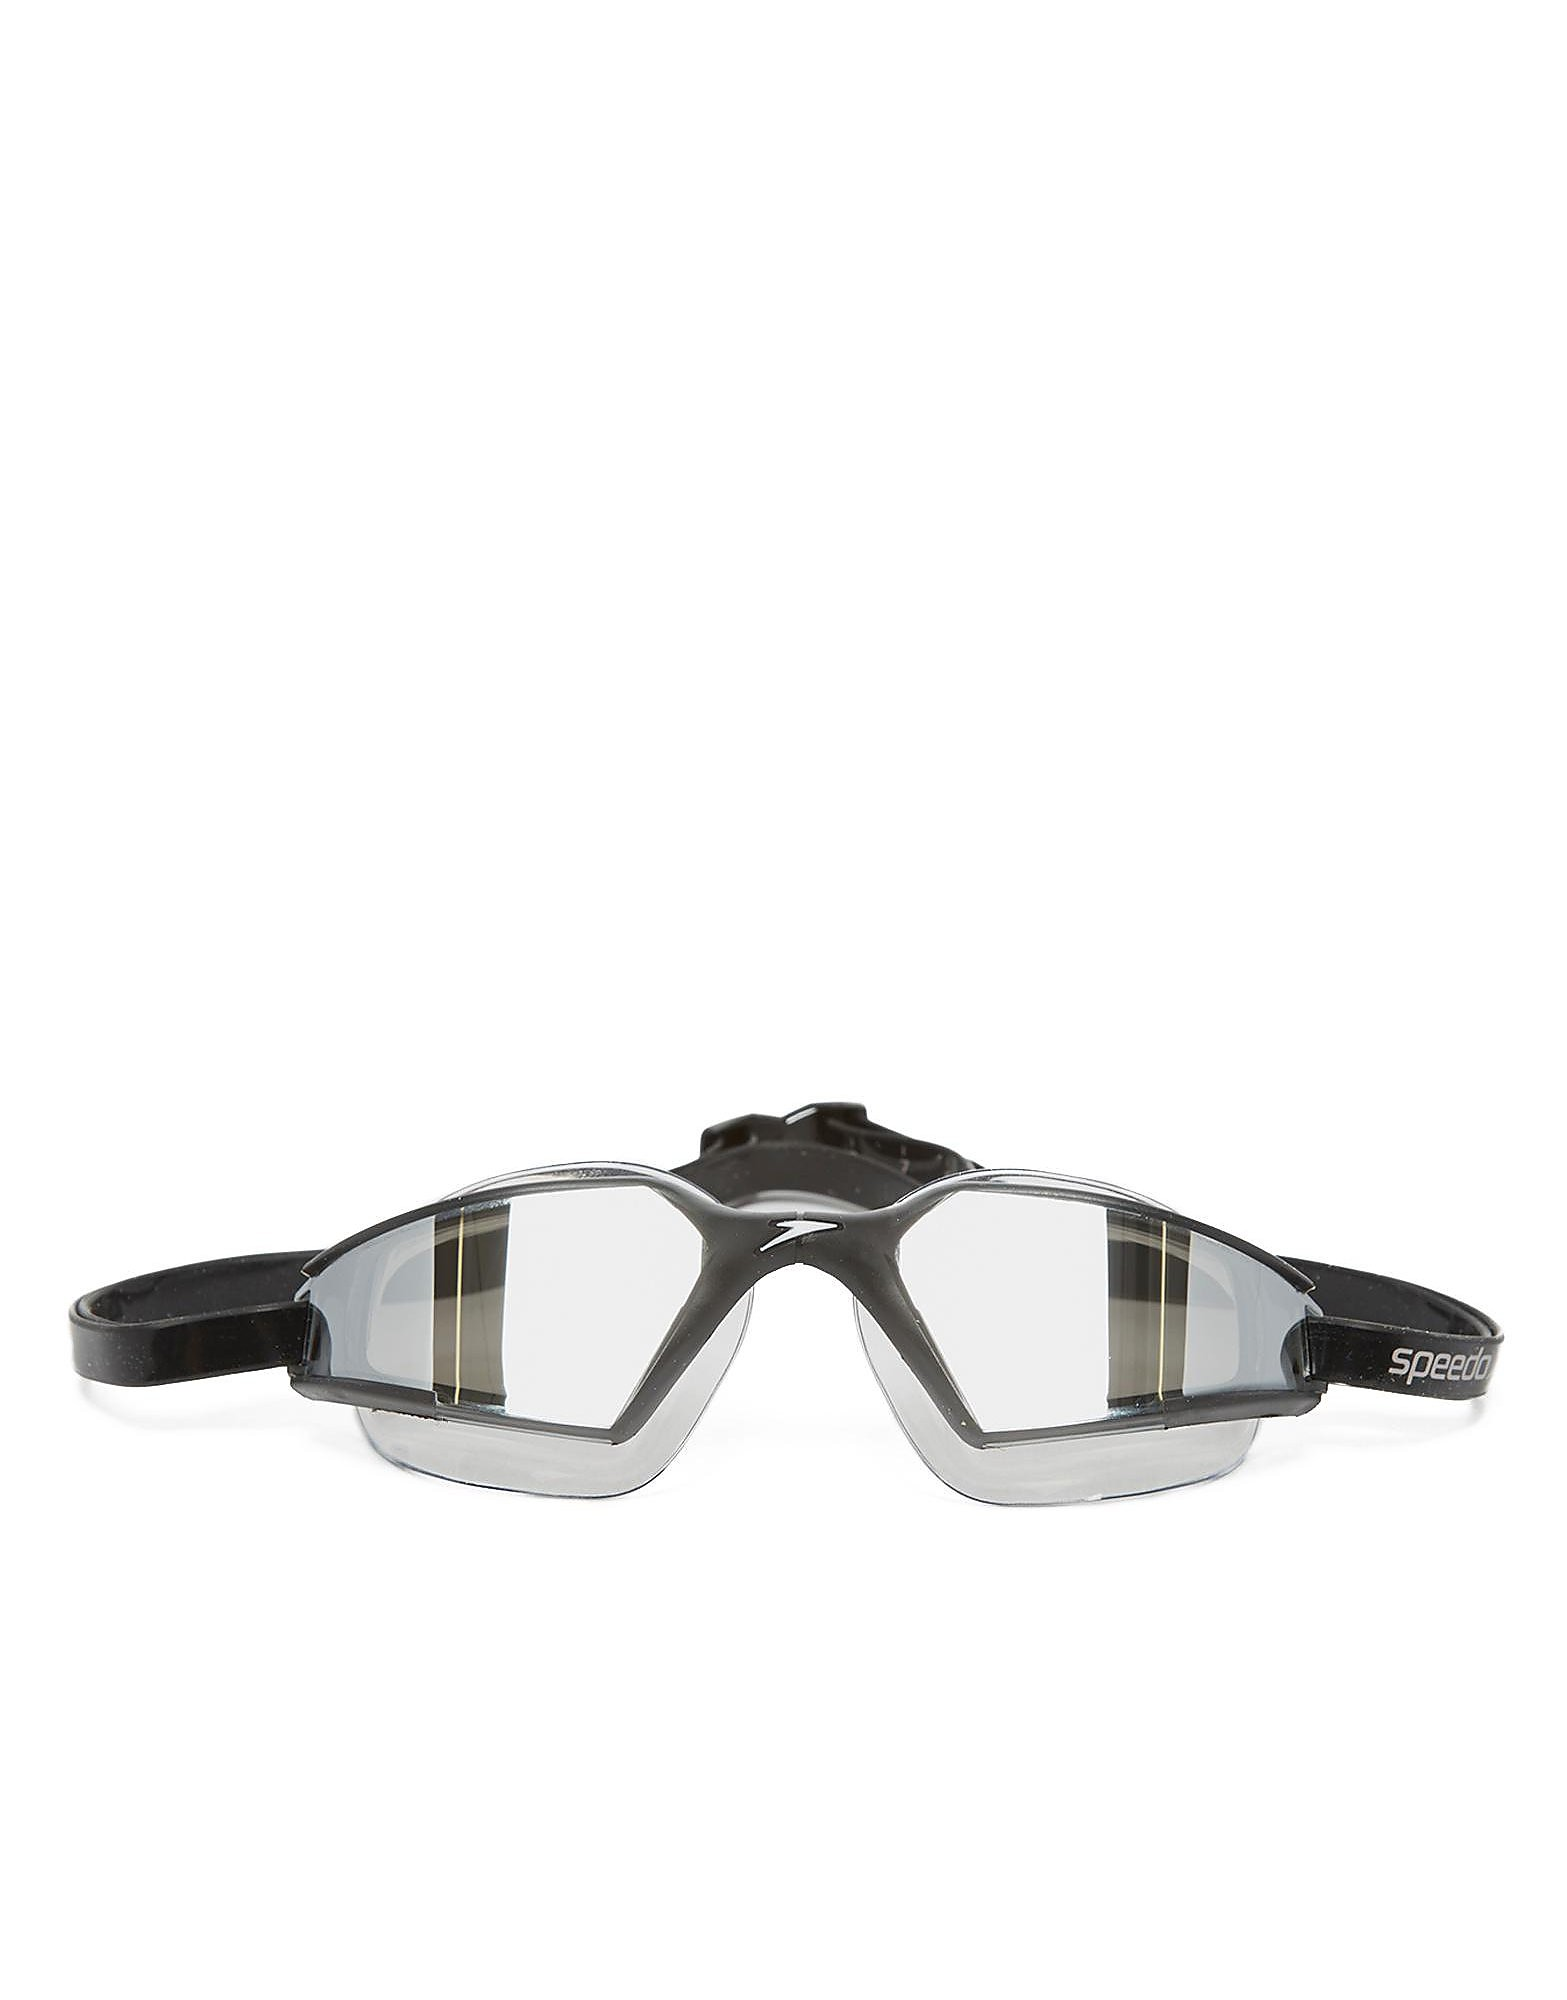 Speedo Aquapulse Max Mirror Goggles